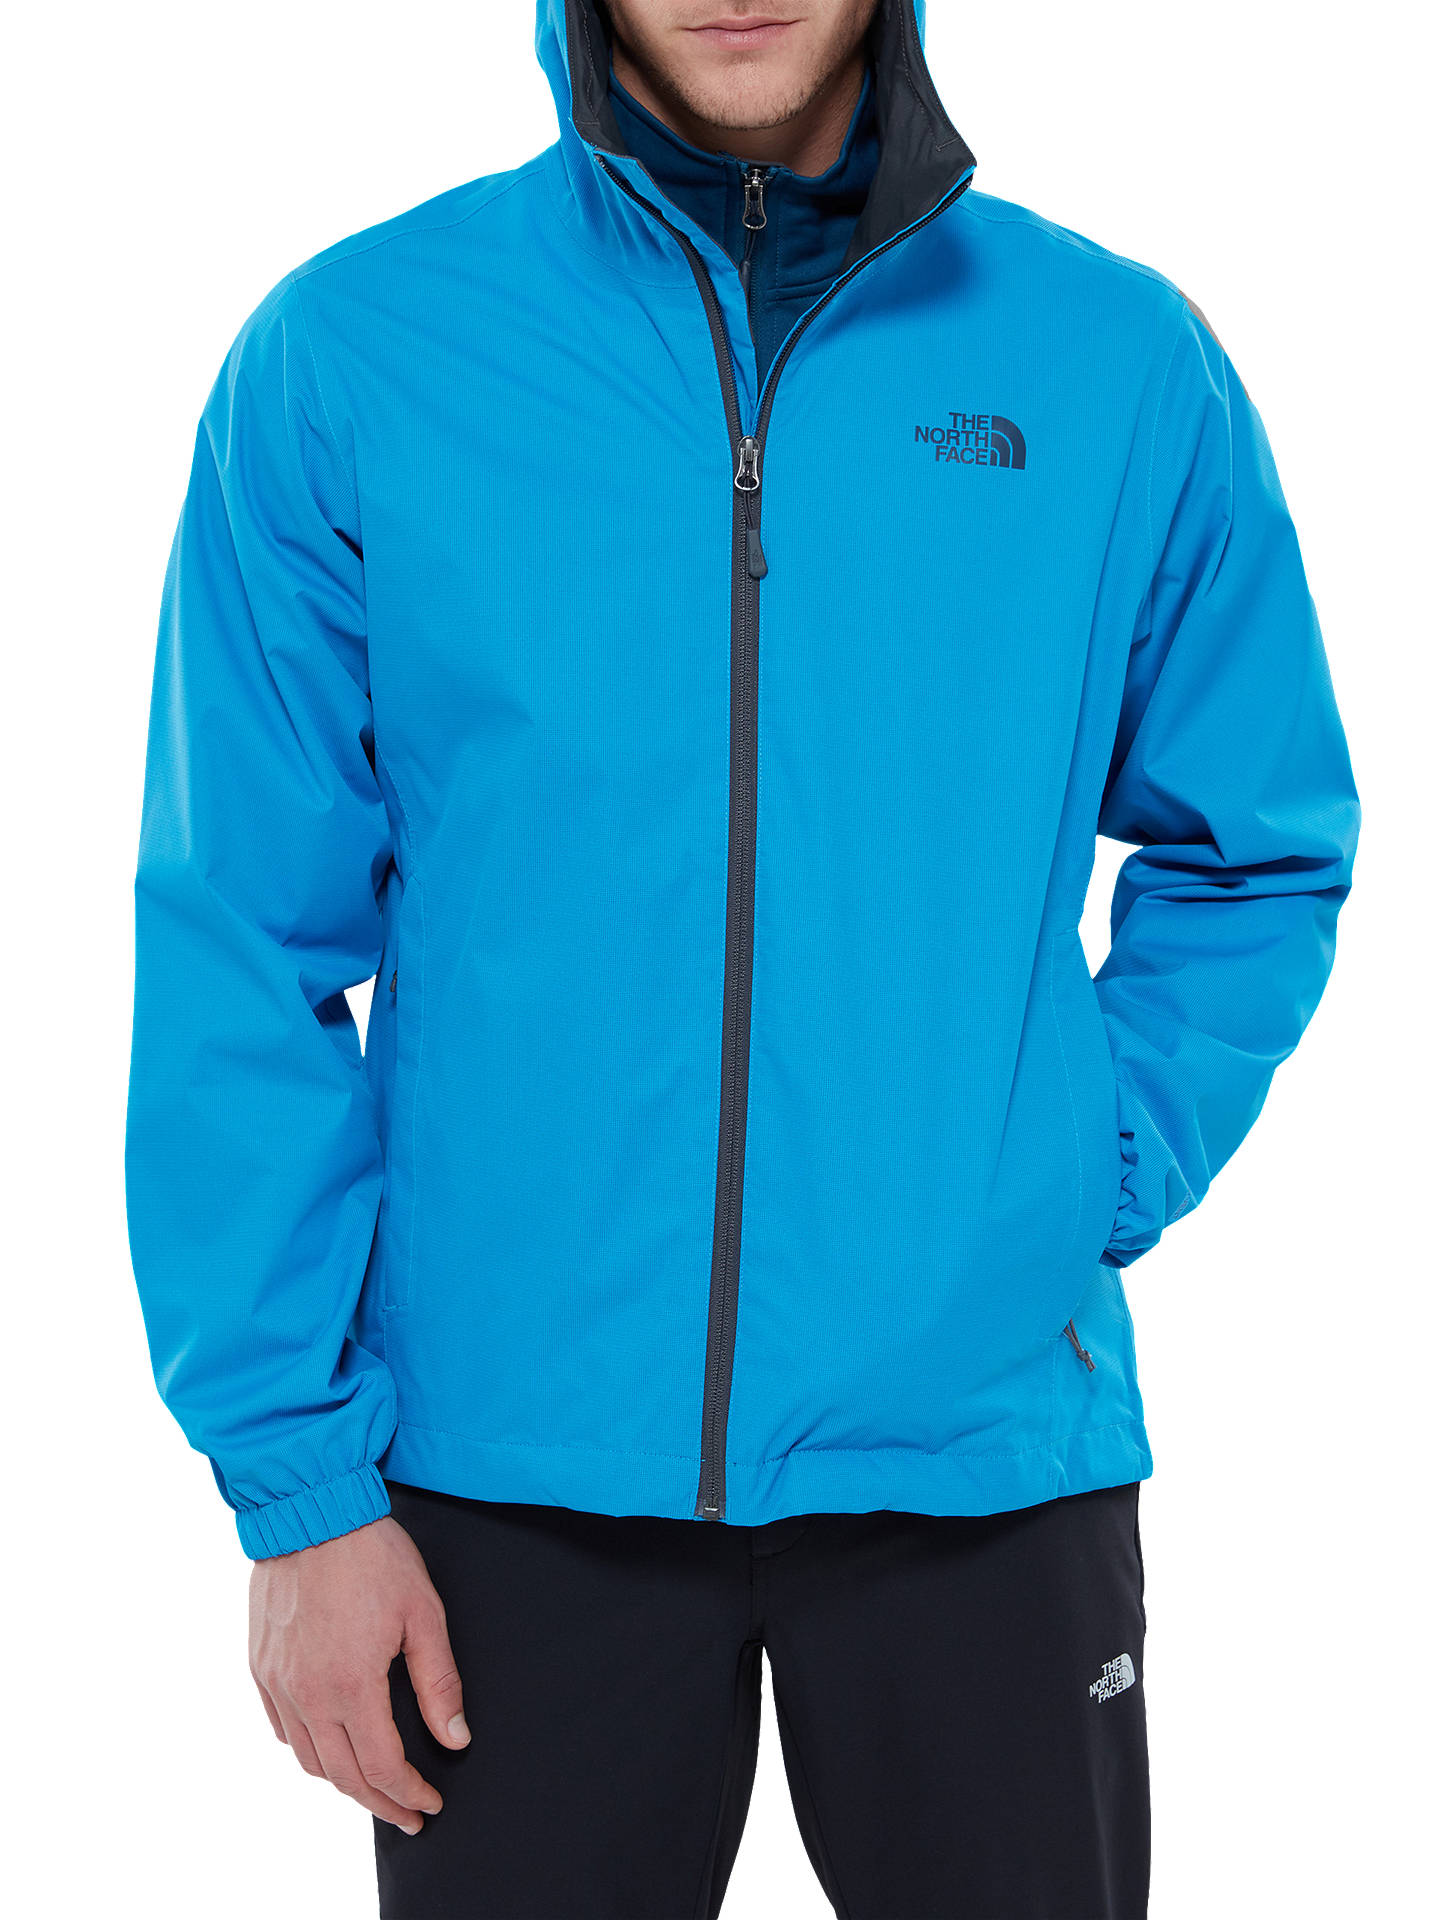 497c7d2c0 The North Face Quest Men's Waterproof Jacket, Blue at John Lewis ...